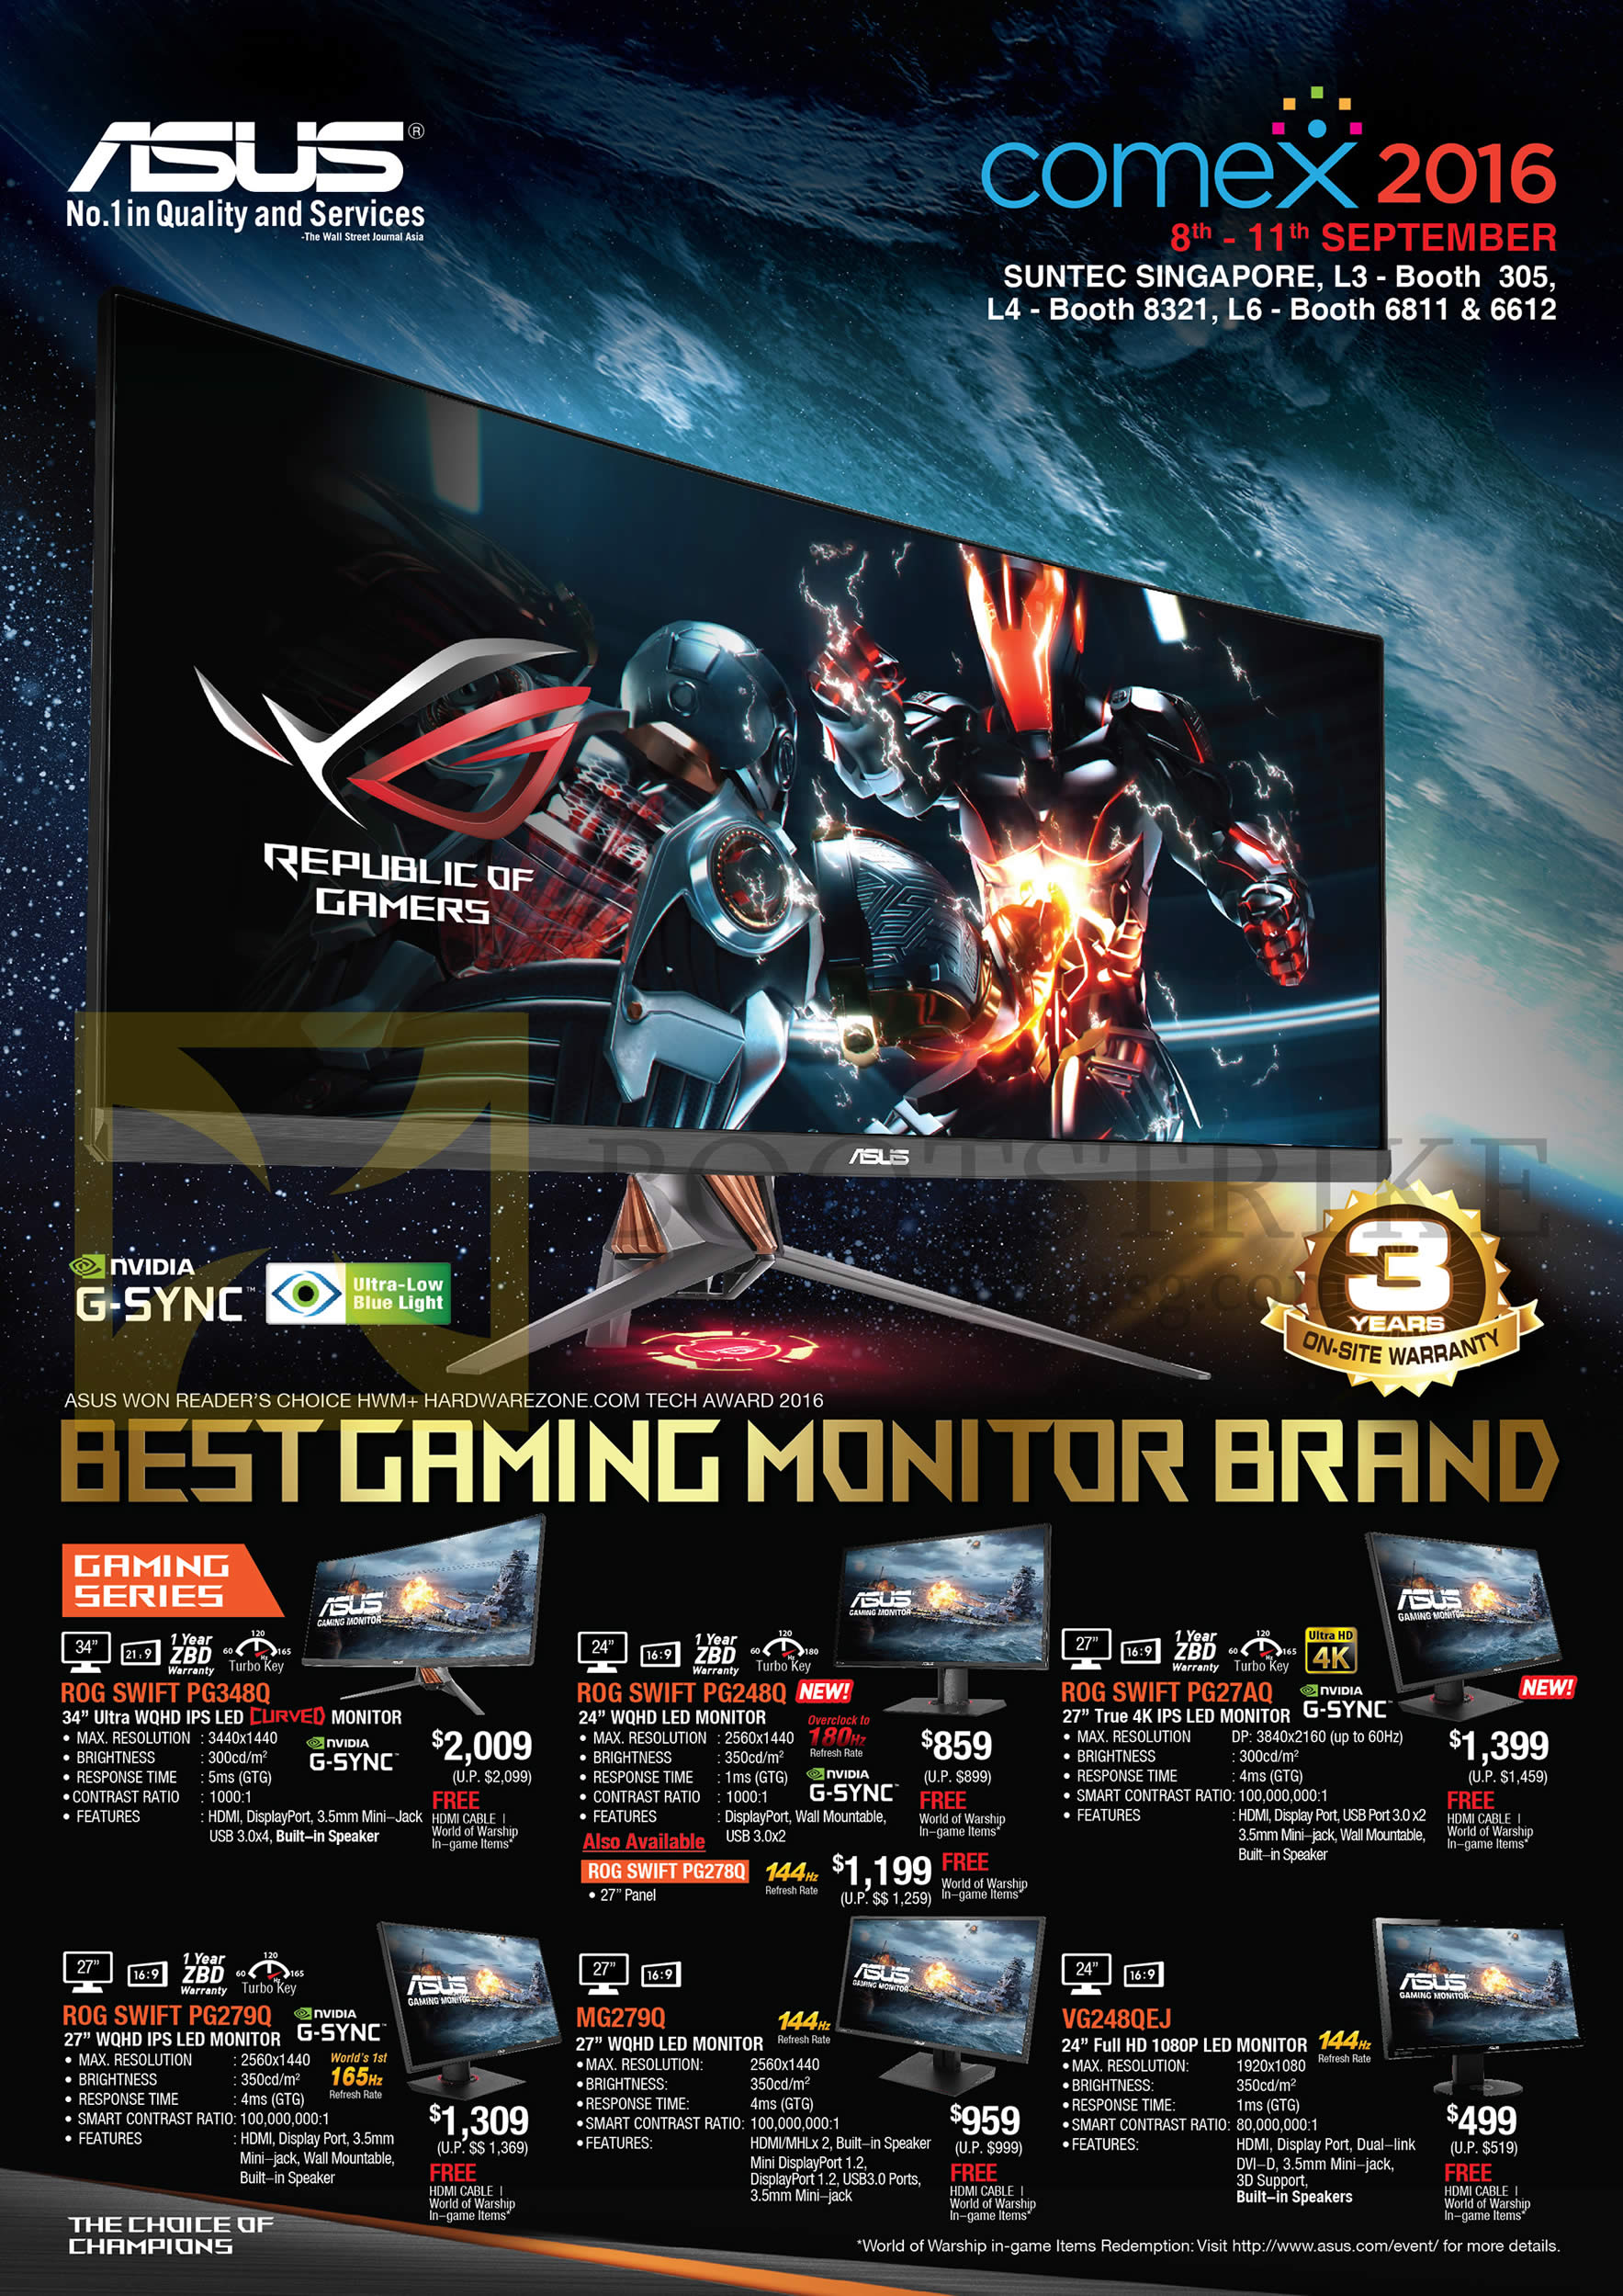 COMEX 2016 price list image brochure of ASUS Monitors Gaming ROG PG348Q, PG248Q, PG27AQ, PG279Q, MG279Q, VG248QEJ